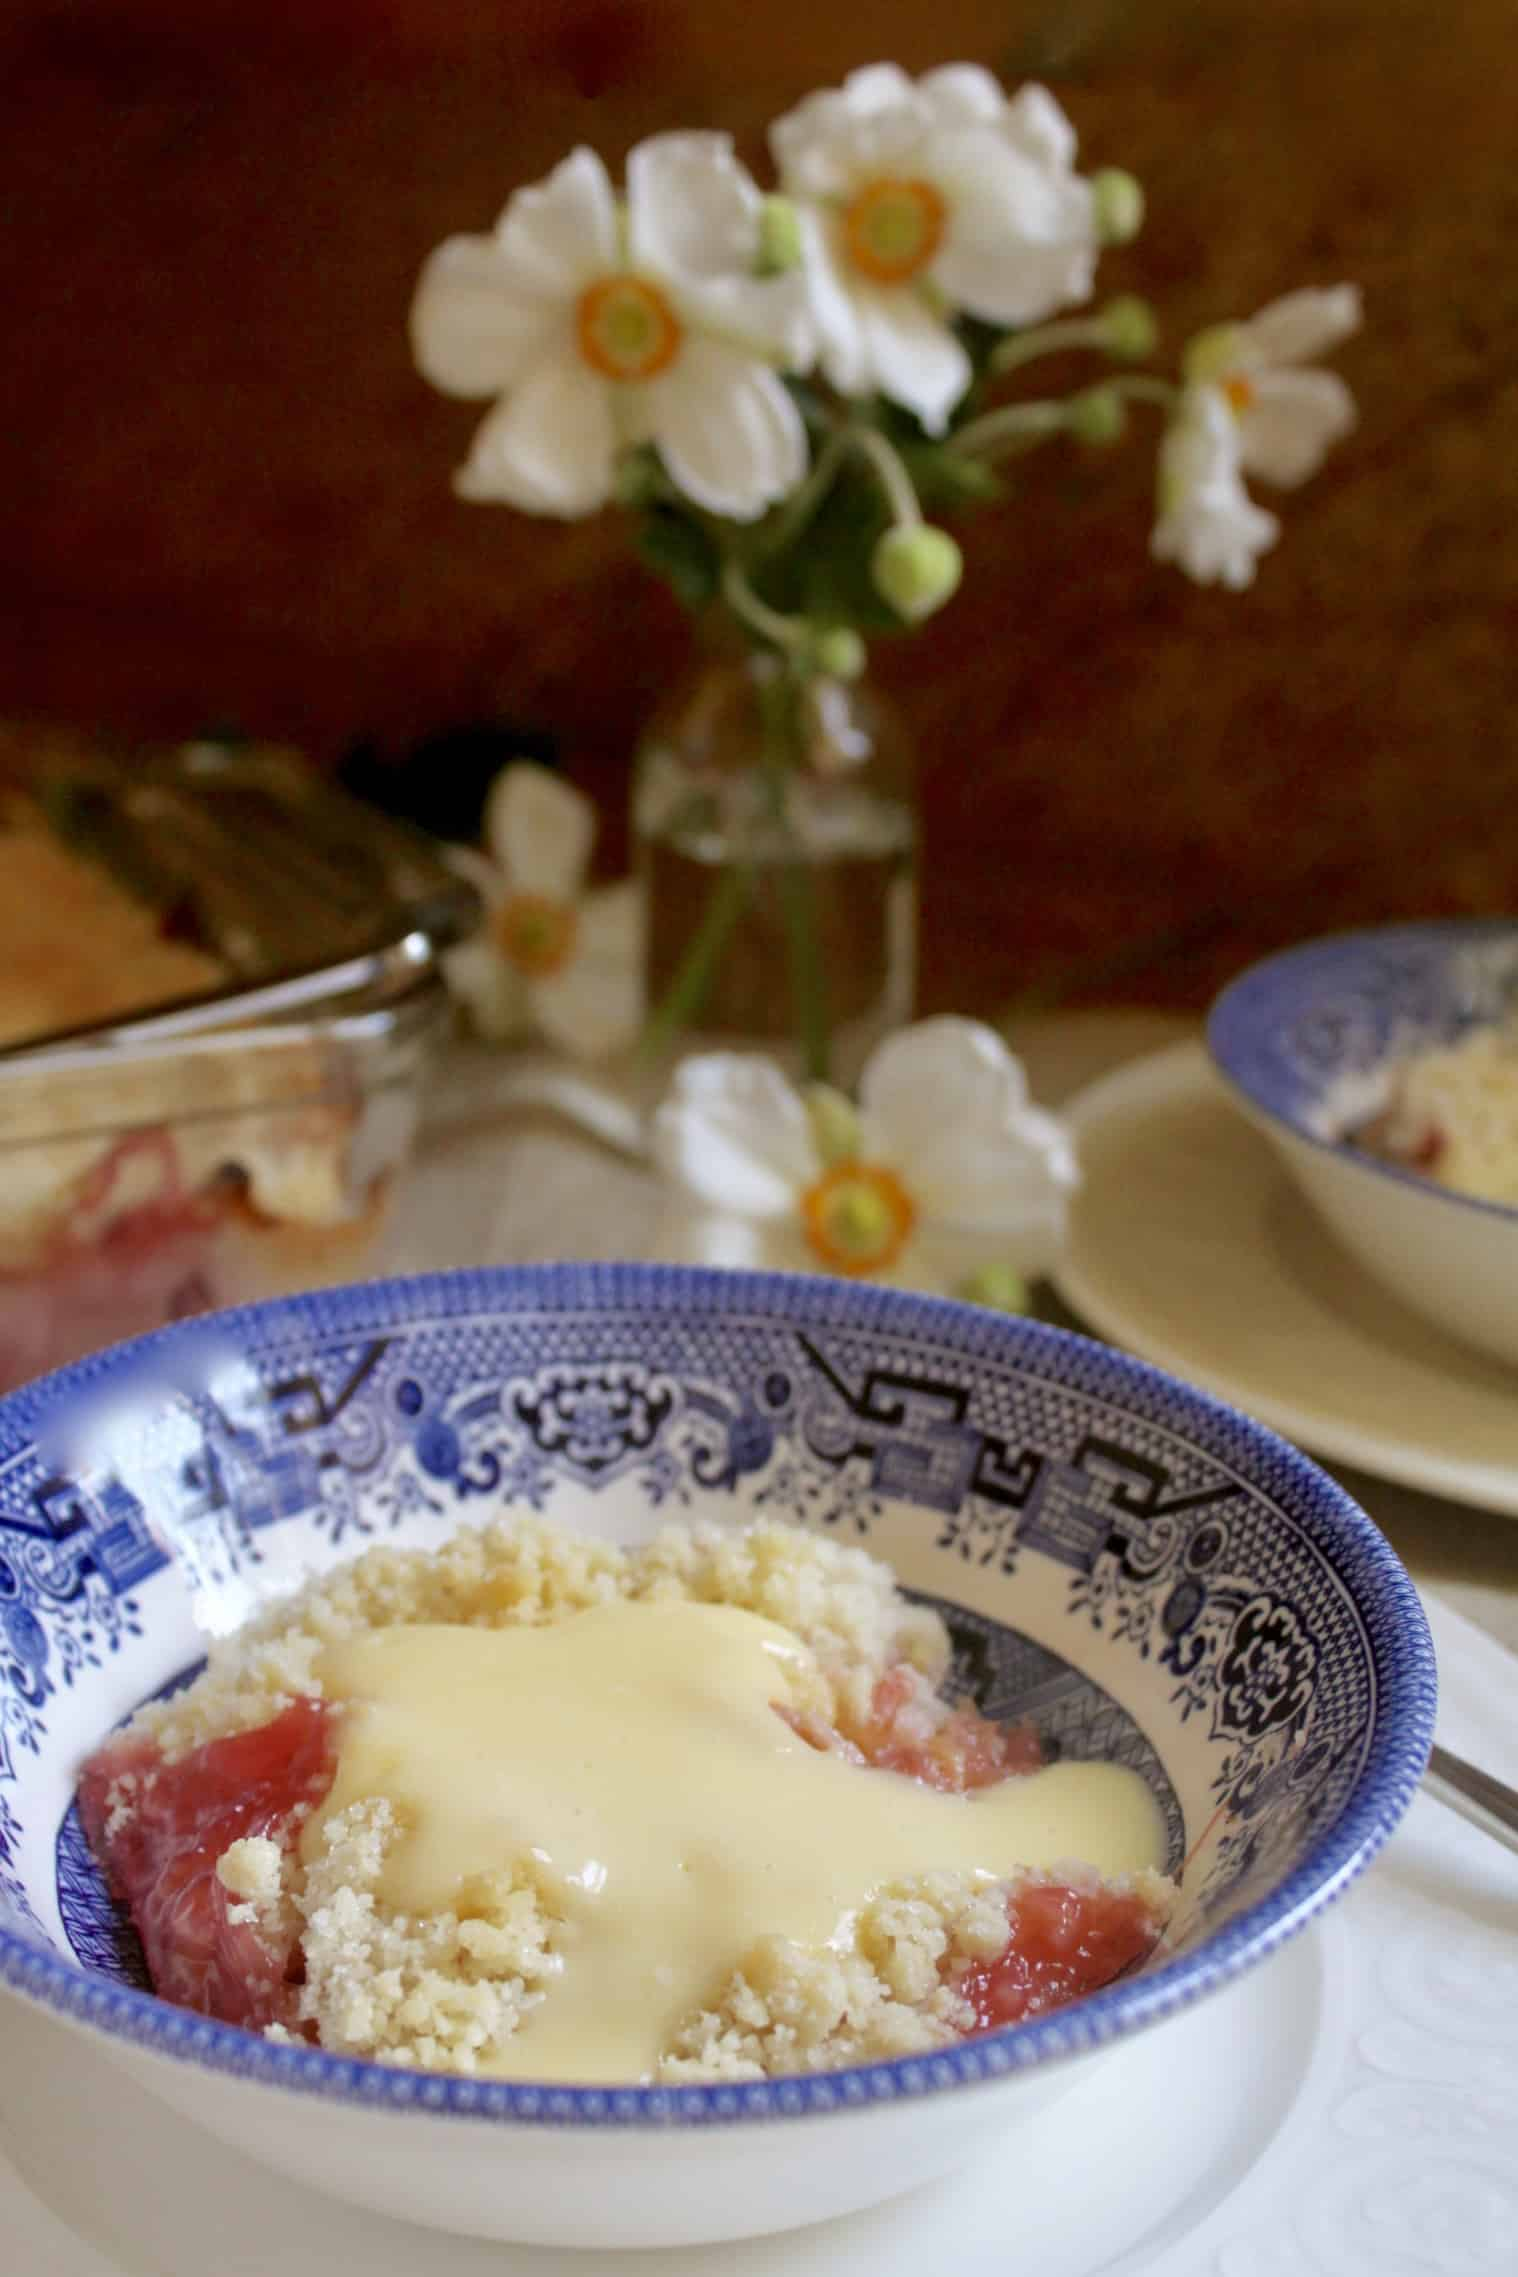 rhubarb crumble and custard in a bowl with flowers